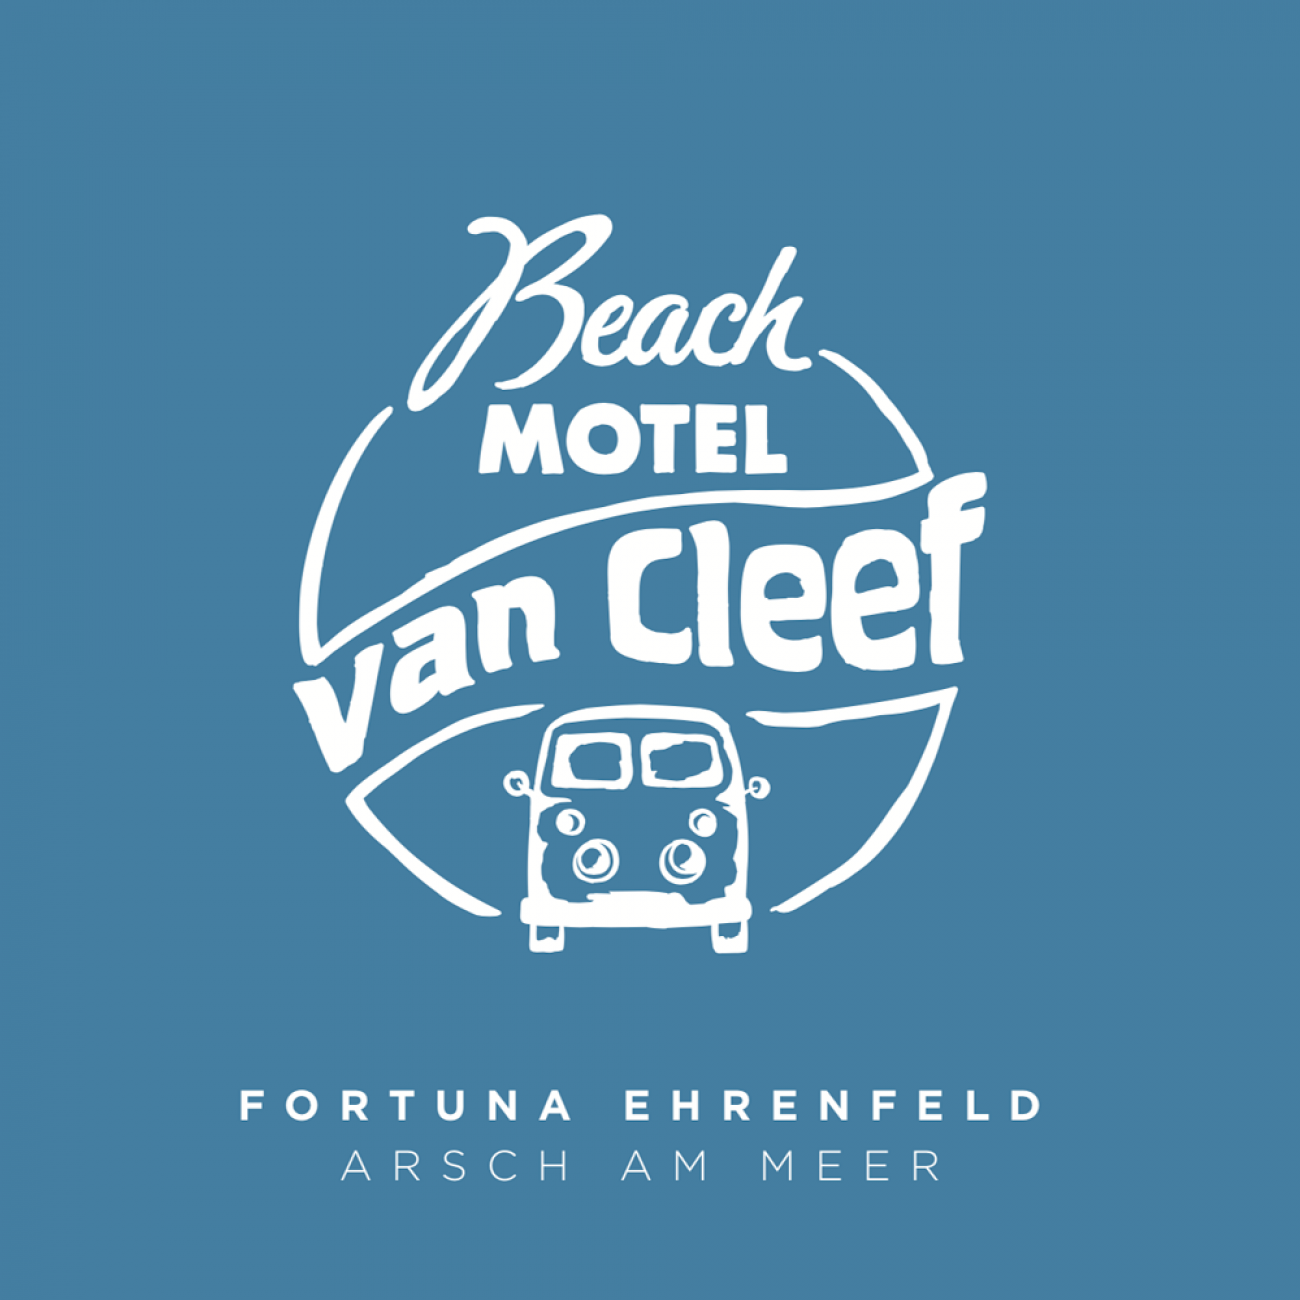 Fortuna Ehrenfeld - Arsch am Meer / Beach Motel van Cleef 2018 - 7''